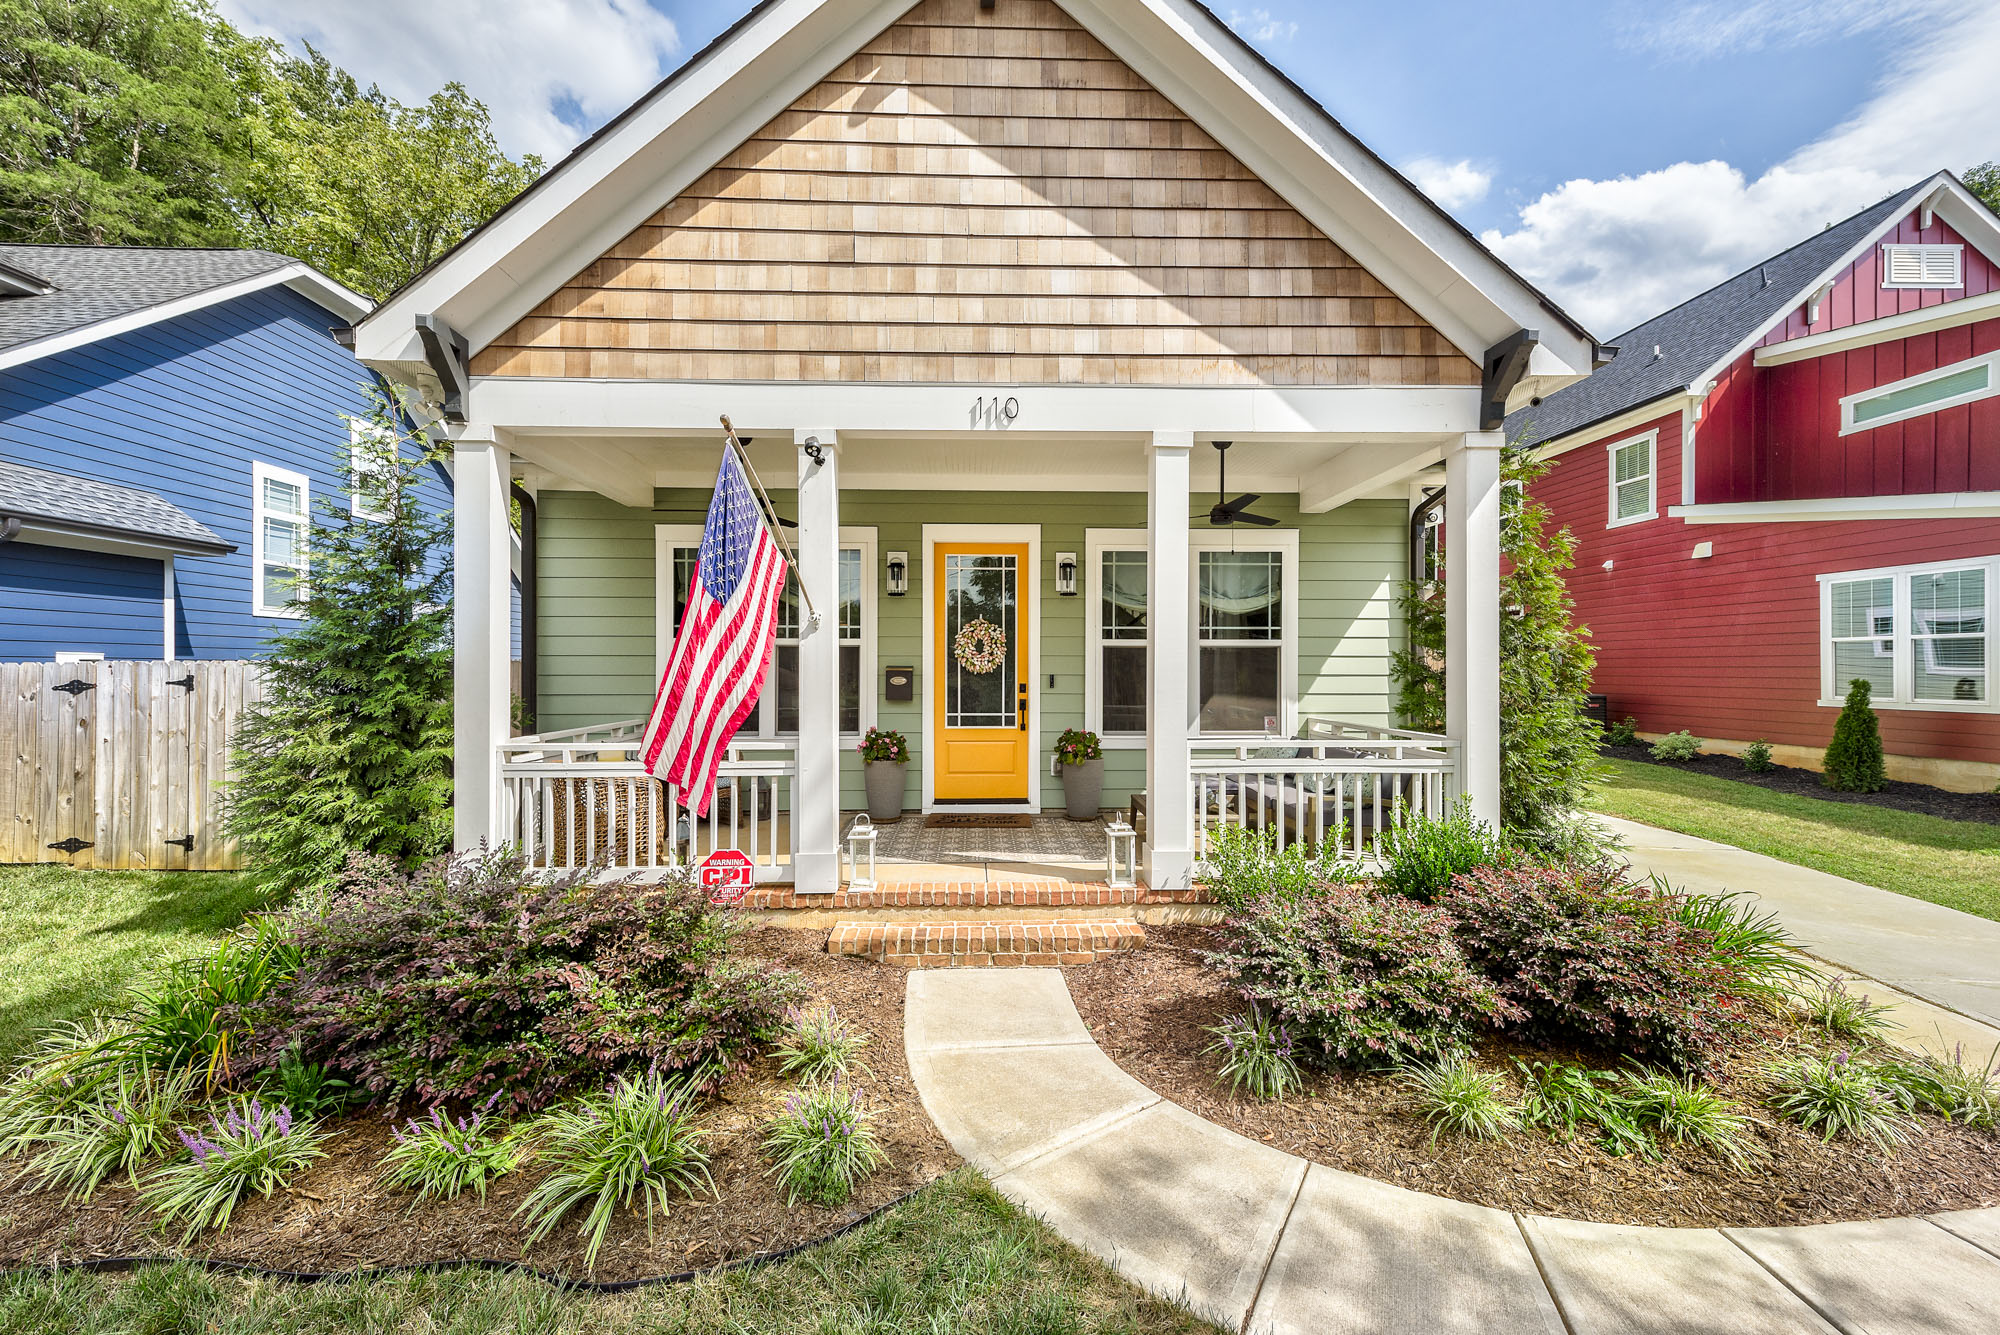 Add 'finding the perfect home' to your list of Labor Day activities